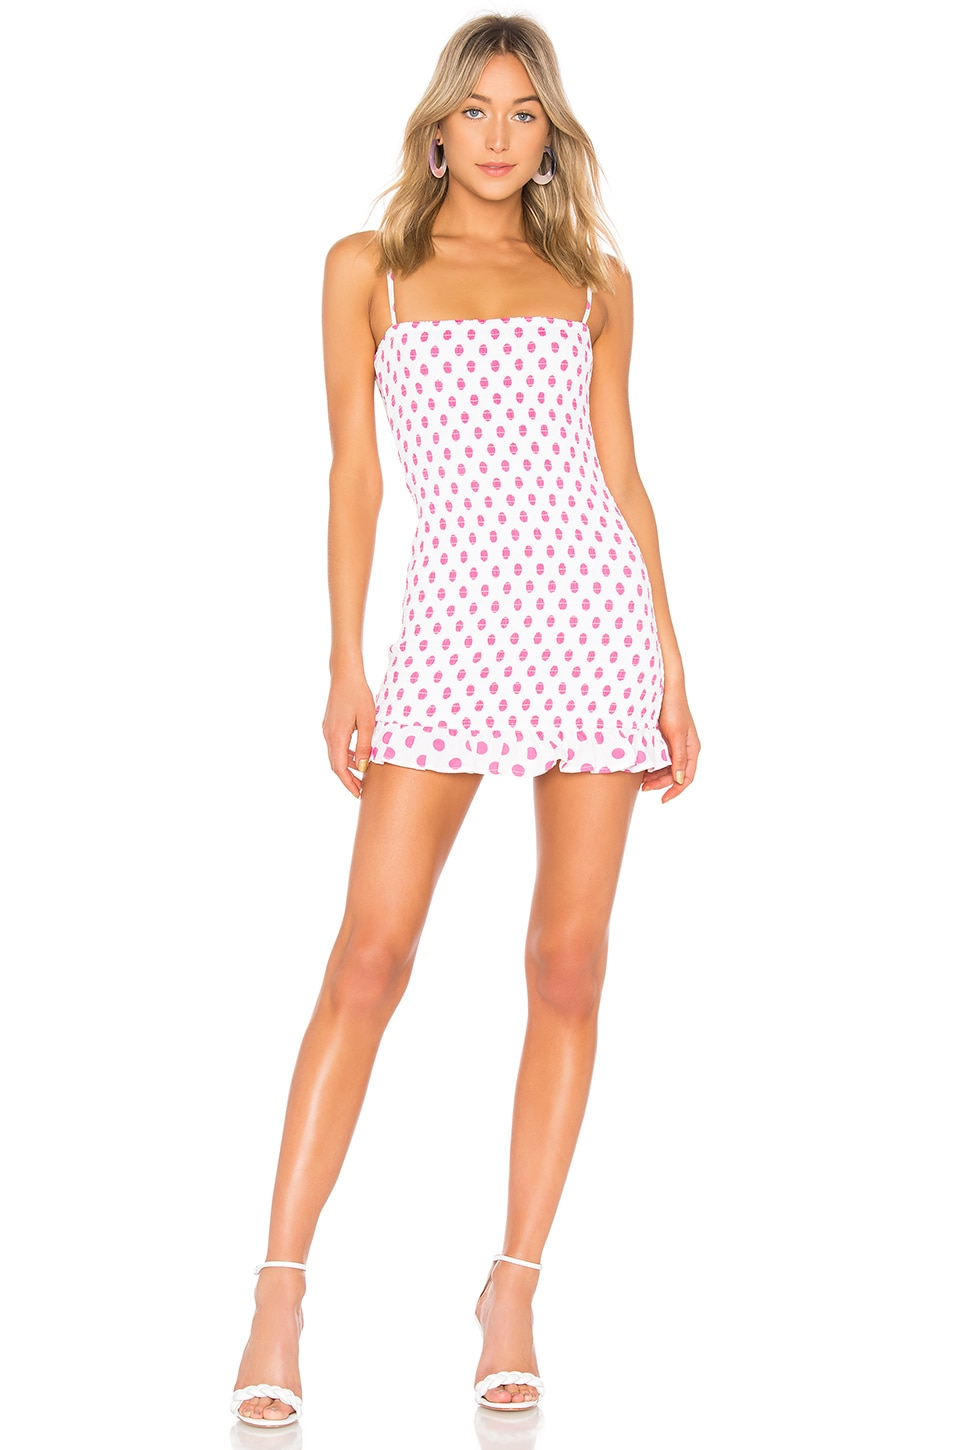 Lovers + Friends Burson Dress in Hot Pink